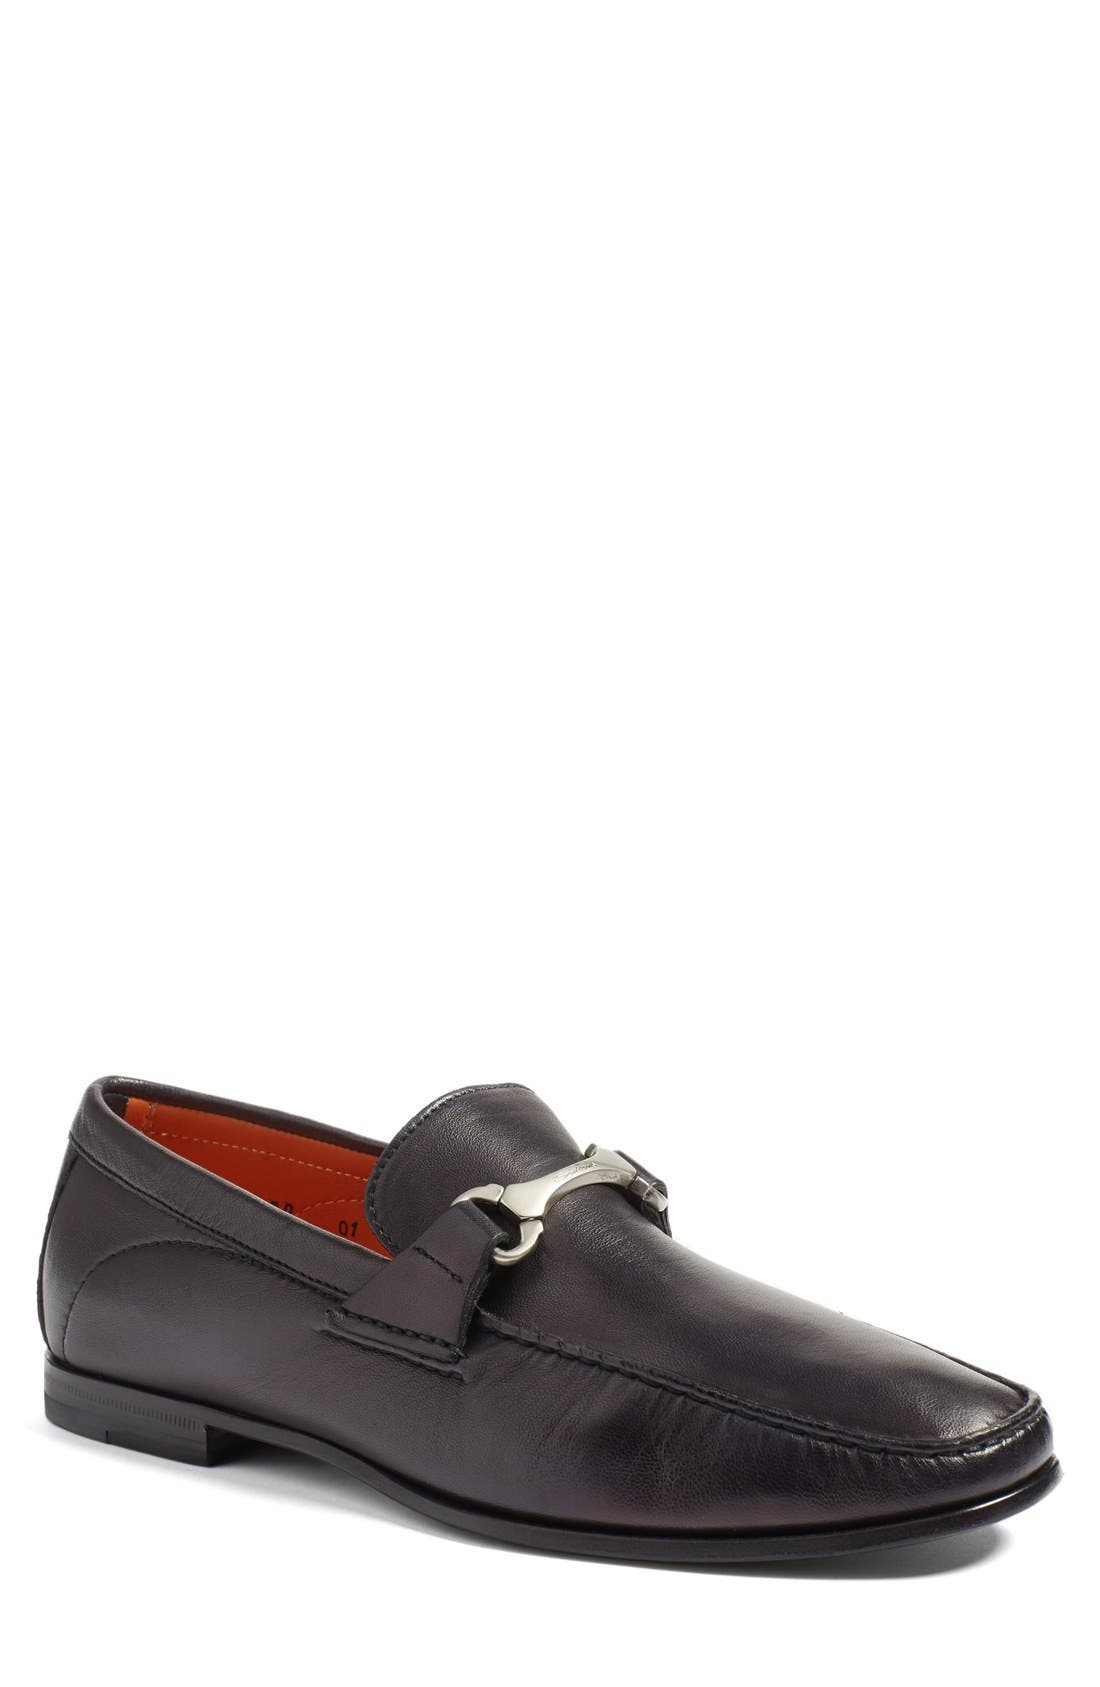 'Wake' Bit Loafer,                             Main thumbnail 1, color,                             001